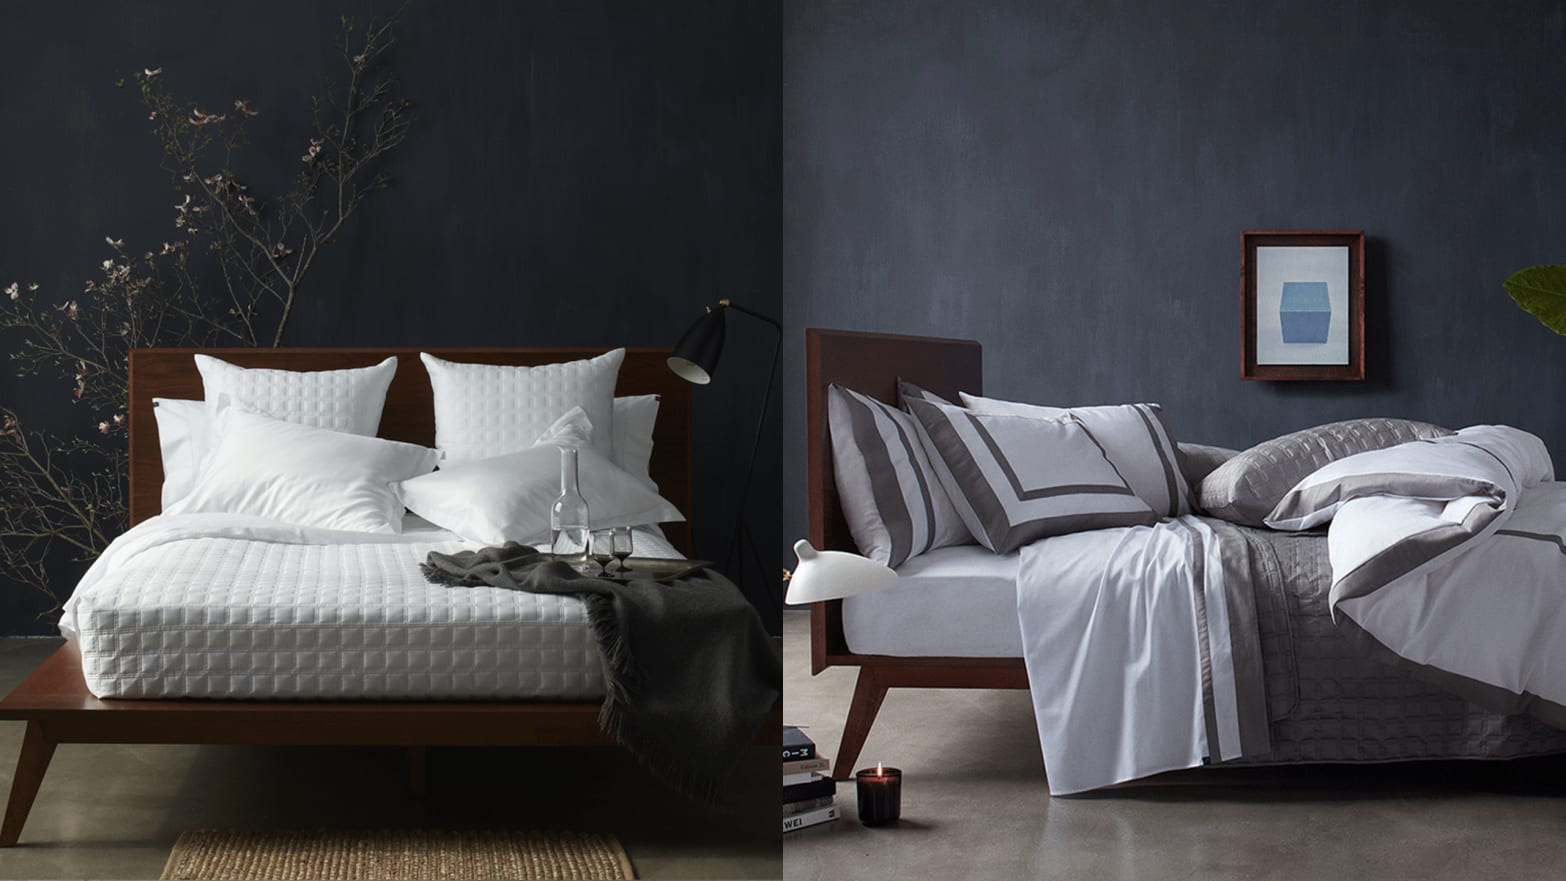 10 Grove Let's You Mix and Match Sustainable, Luxury Sheets